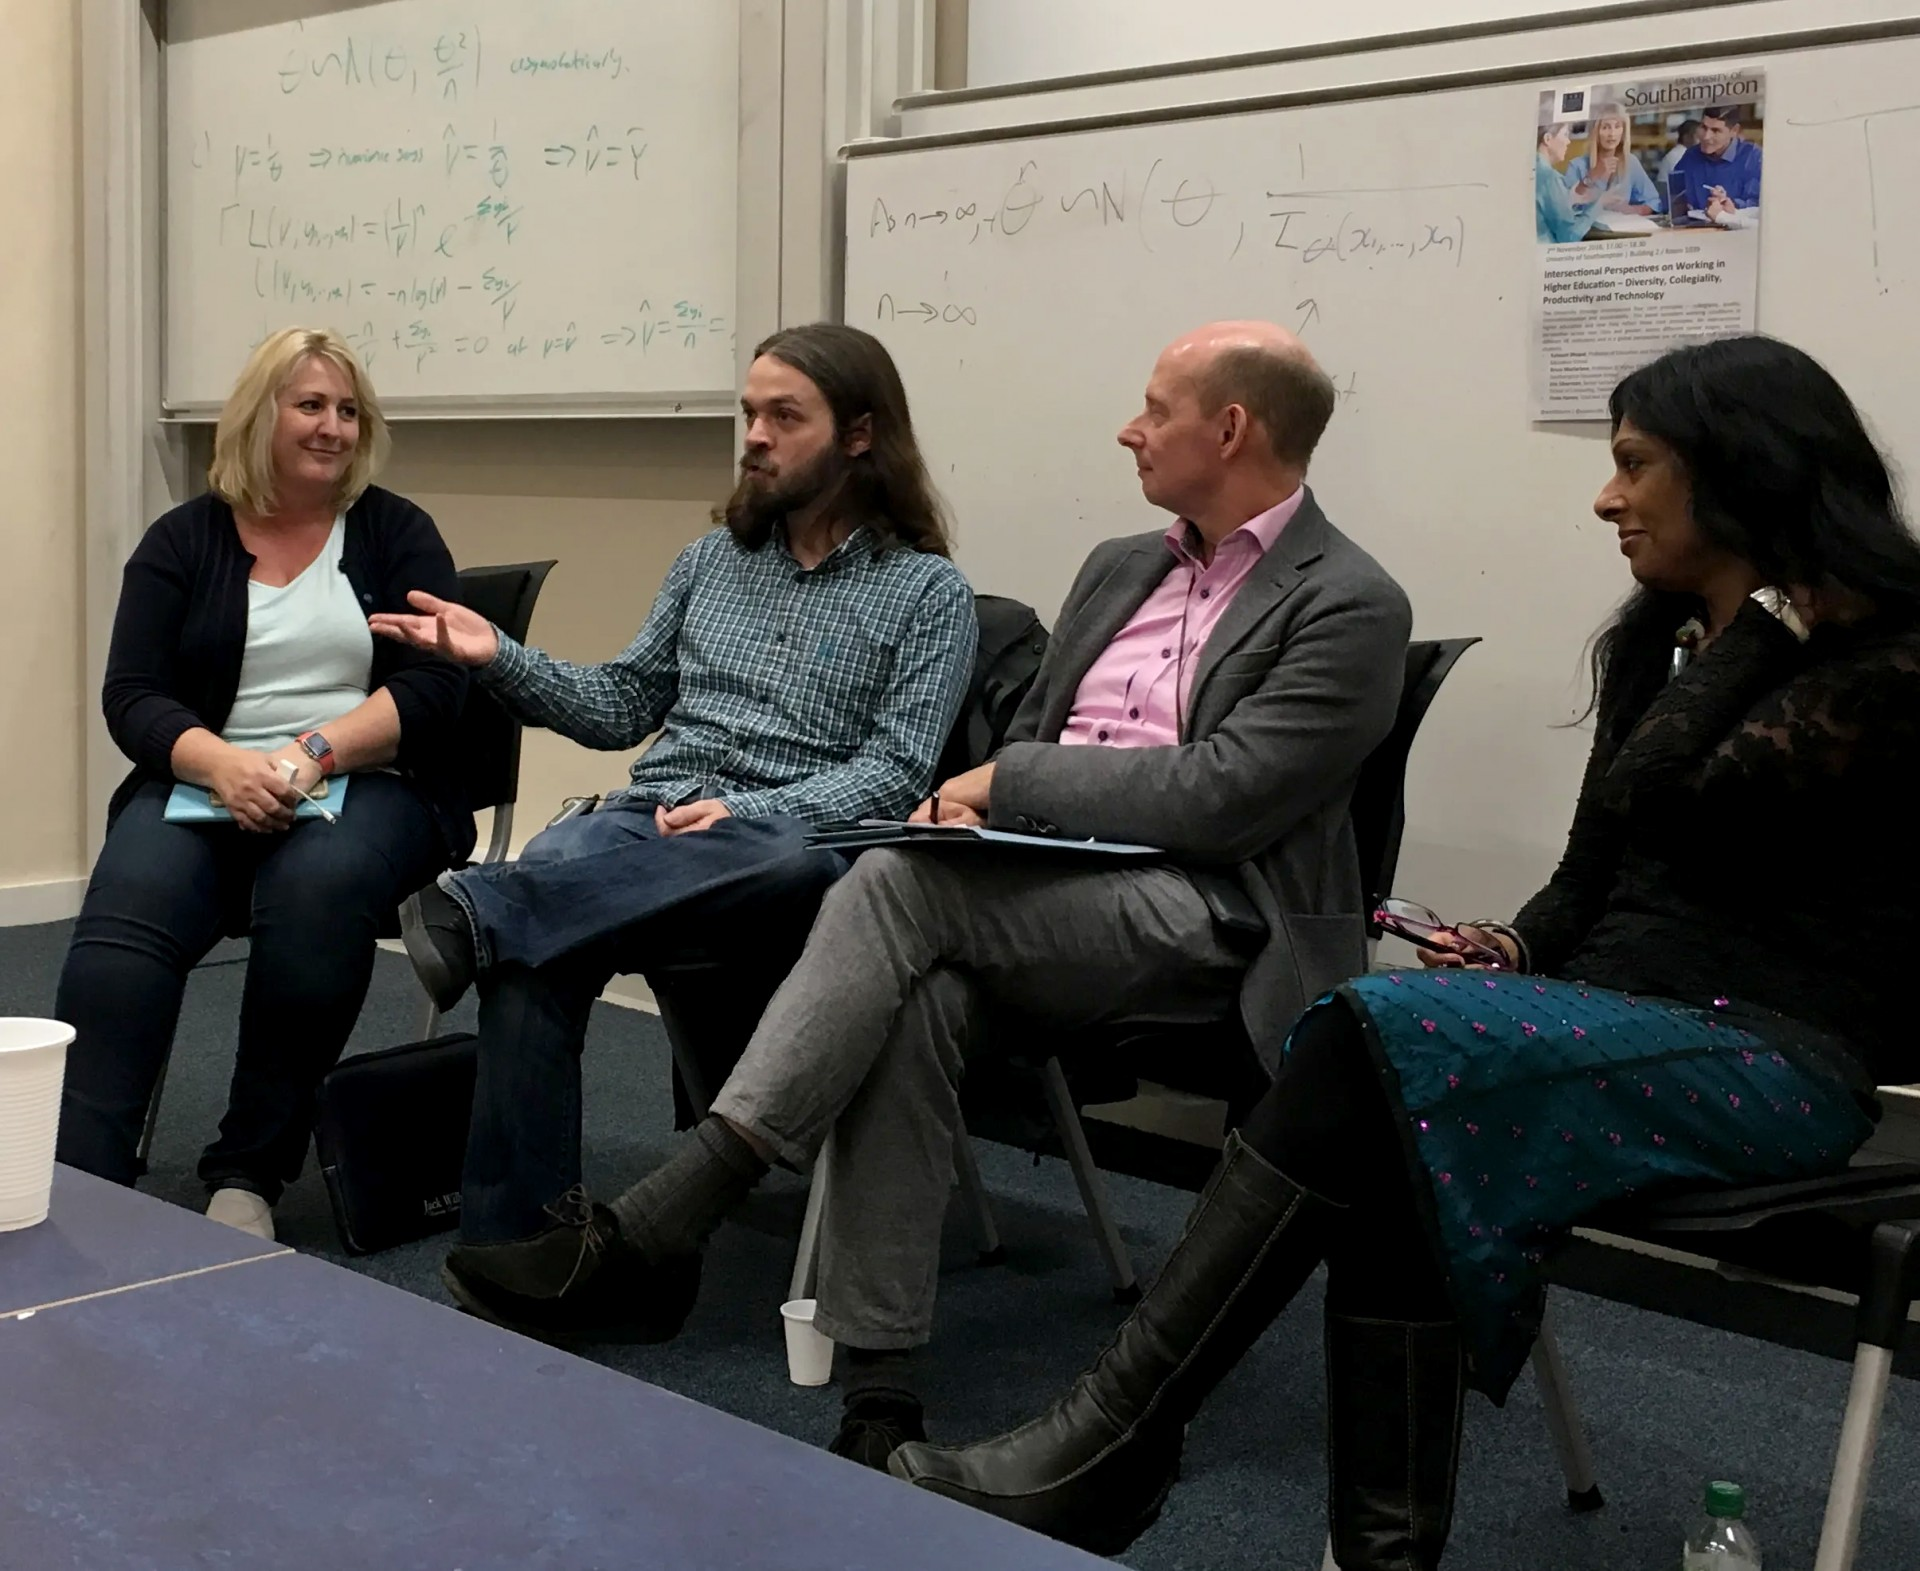 From left to right: Fiona Harvey, Eric Silverman, Bruce Macfarlane, Kalwant Bhopal